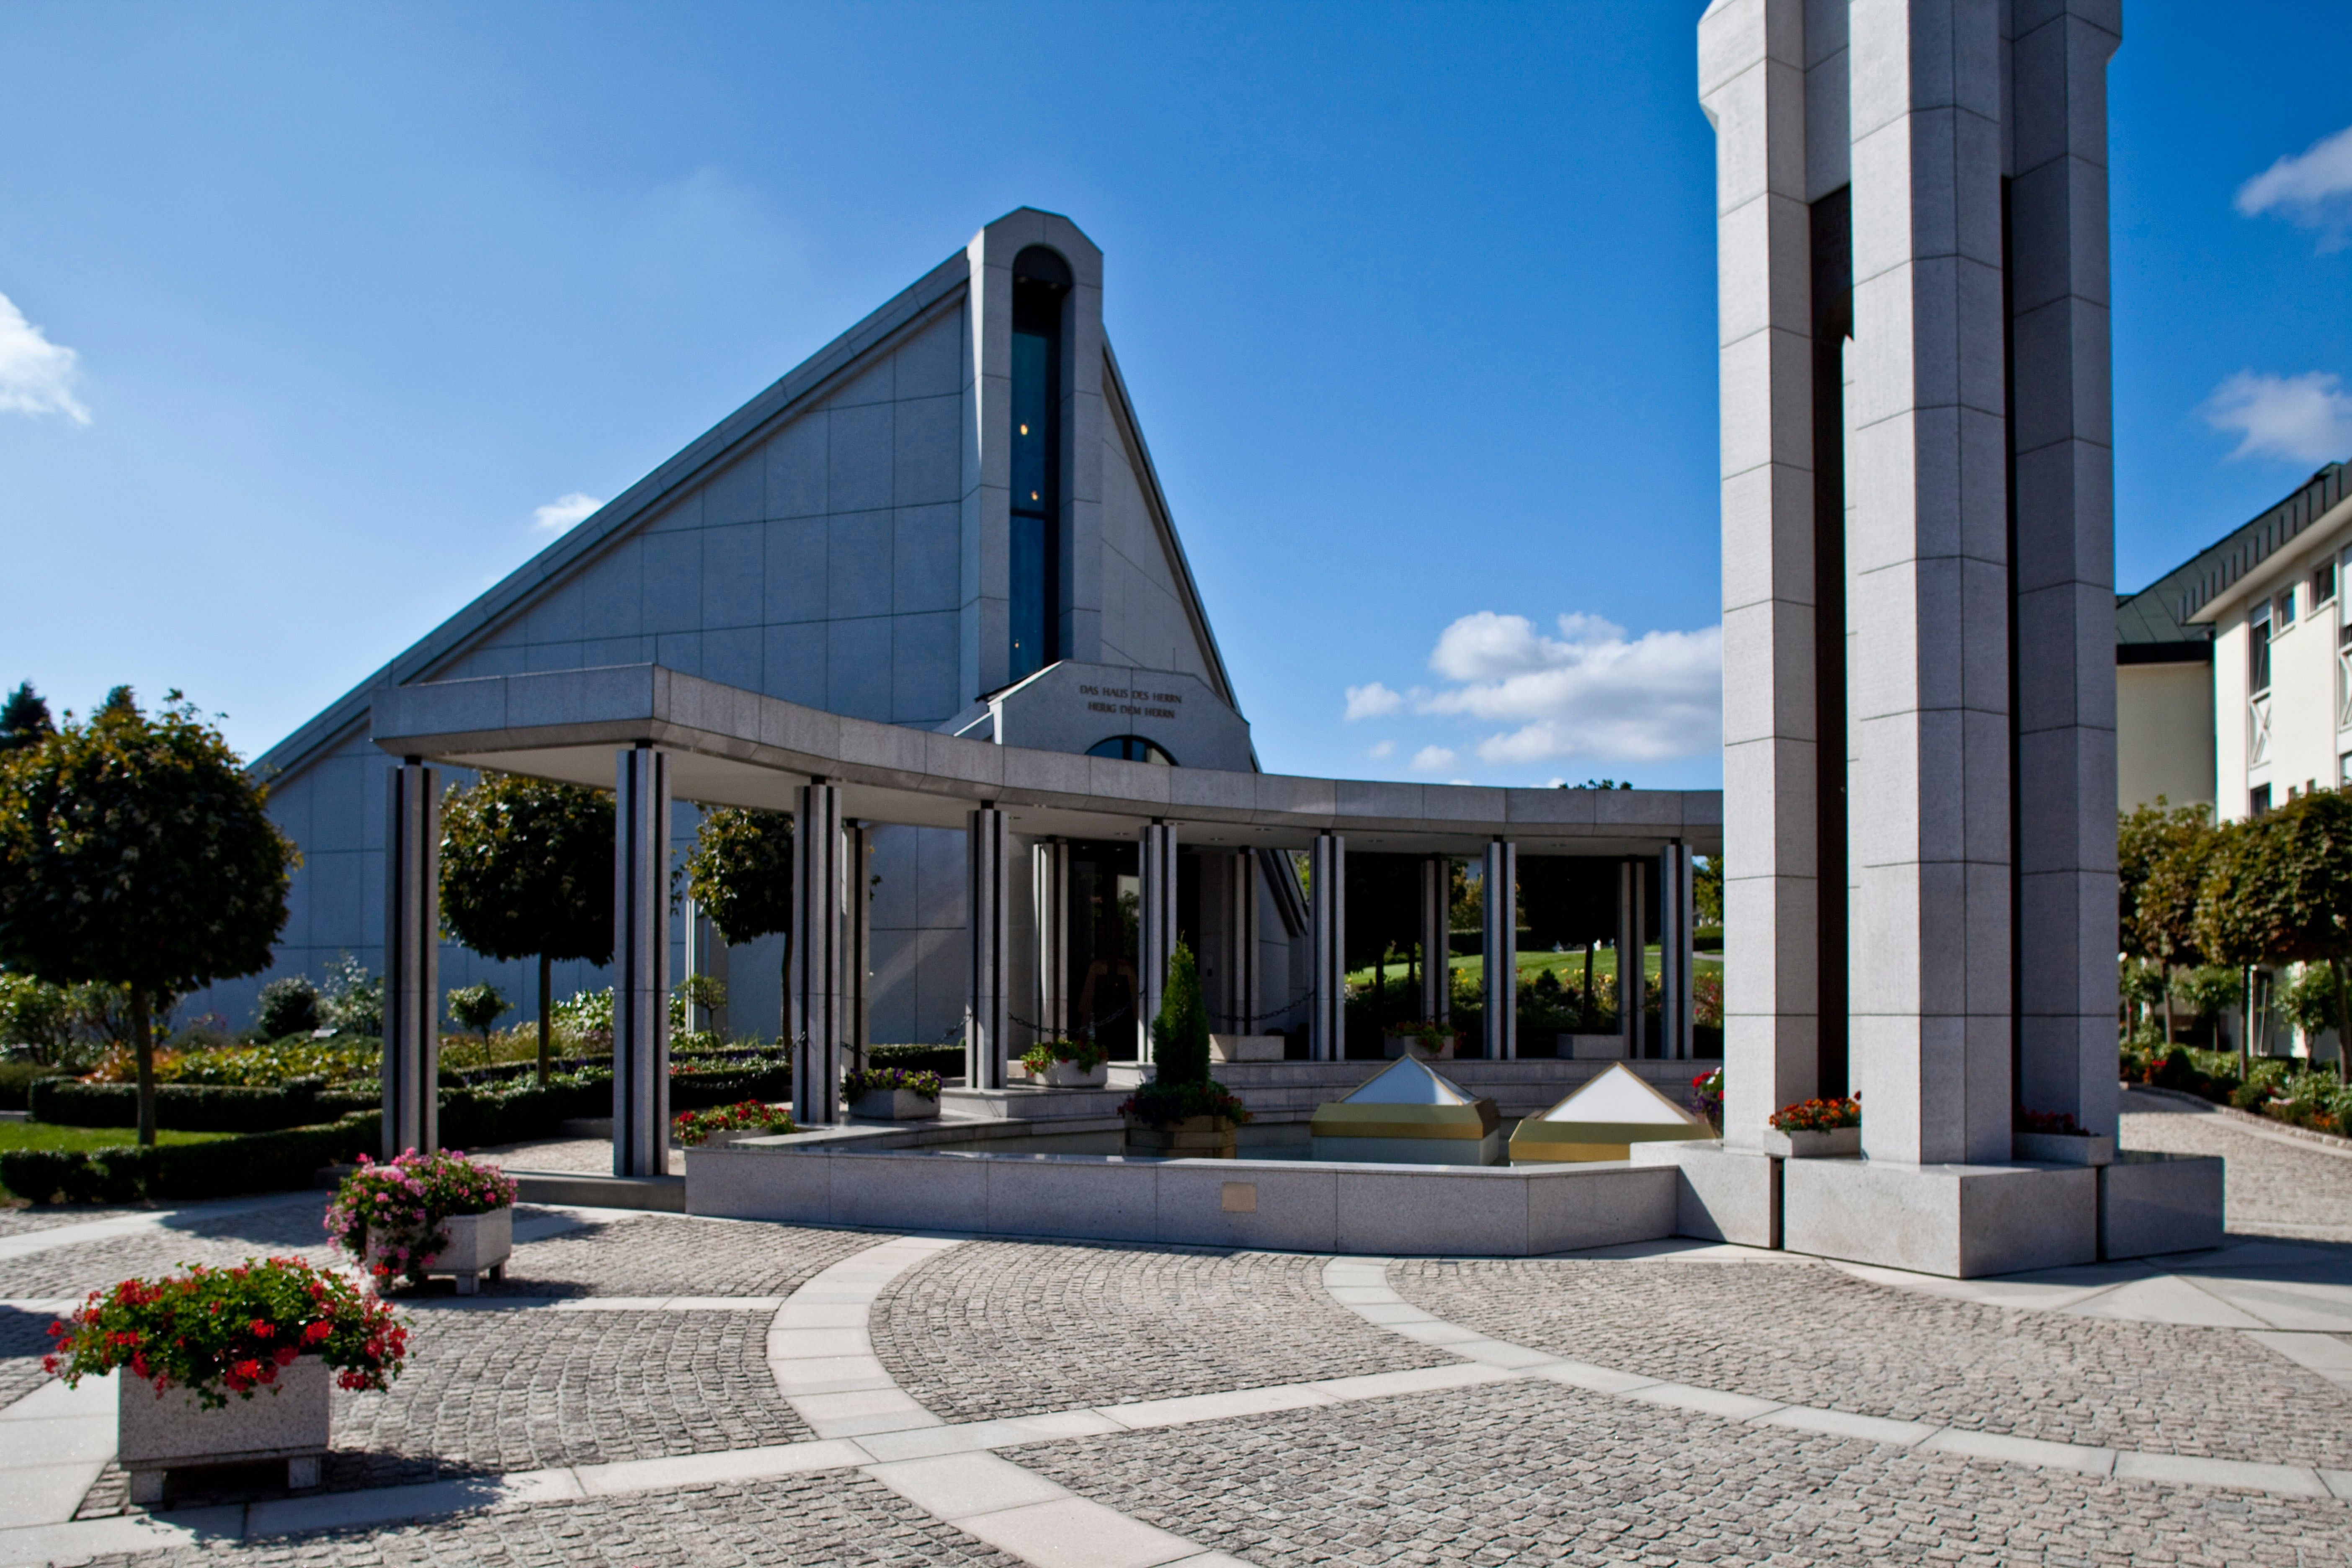 The front entrance to the Frankfurt Germany Temple.